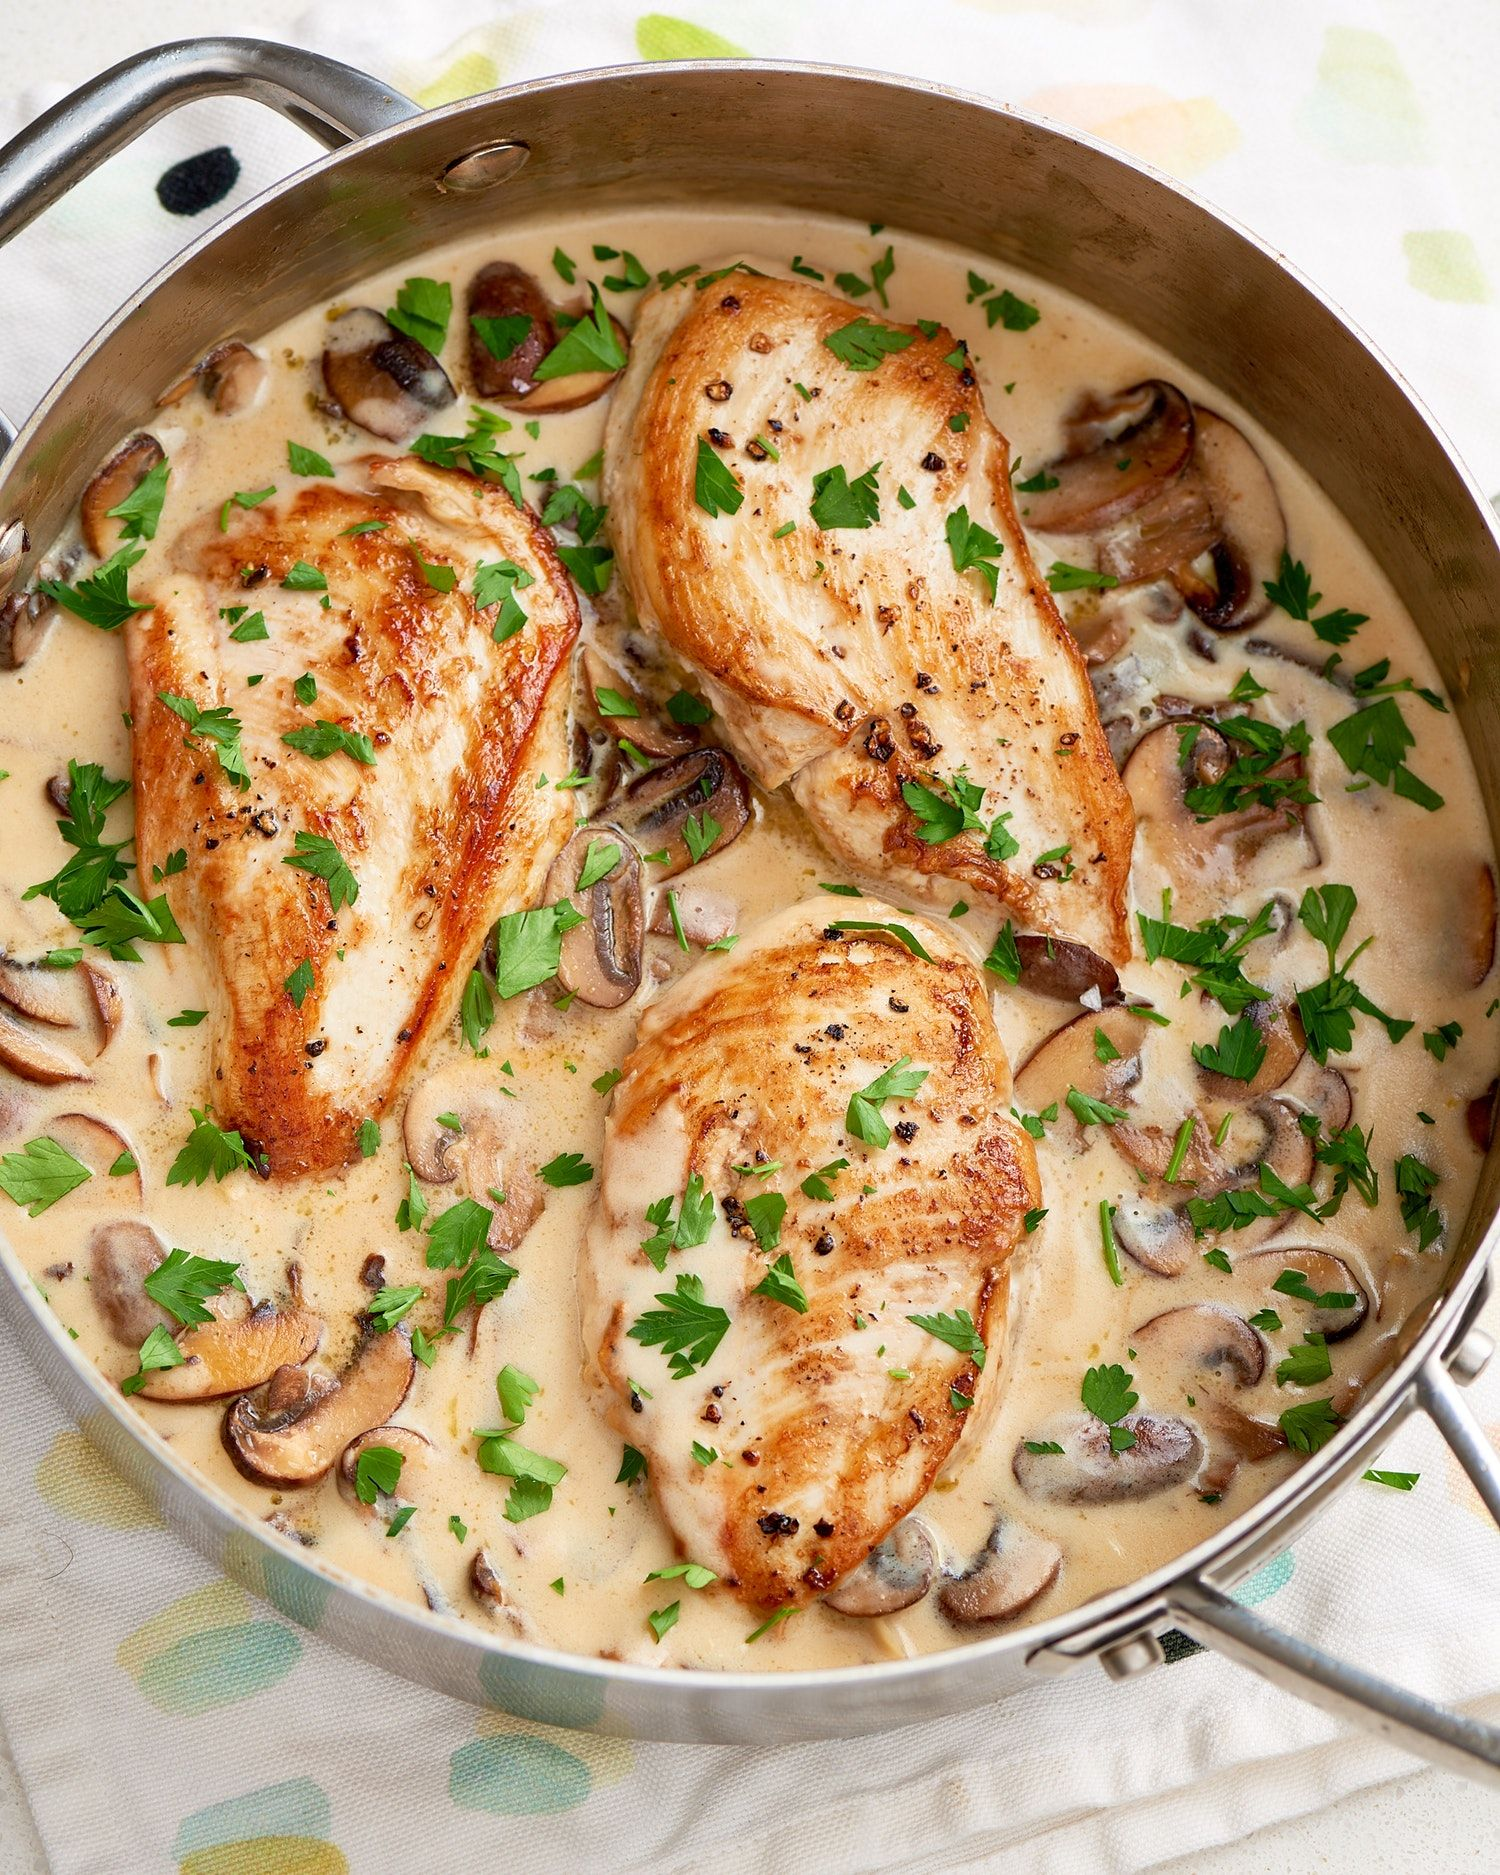 Recipe: Creamy Parmesan Garlic Mushroom Chicken